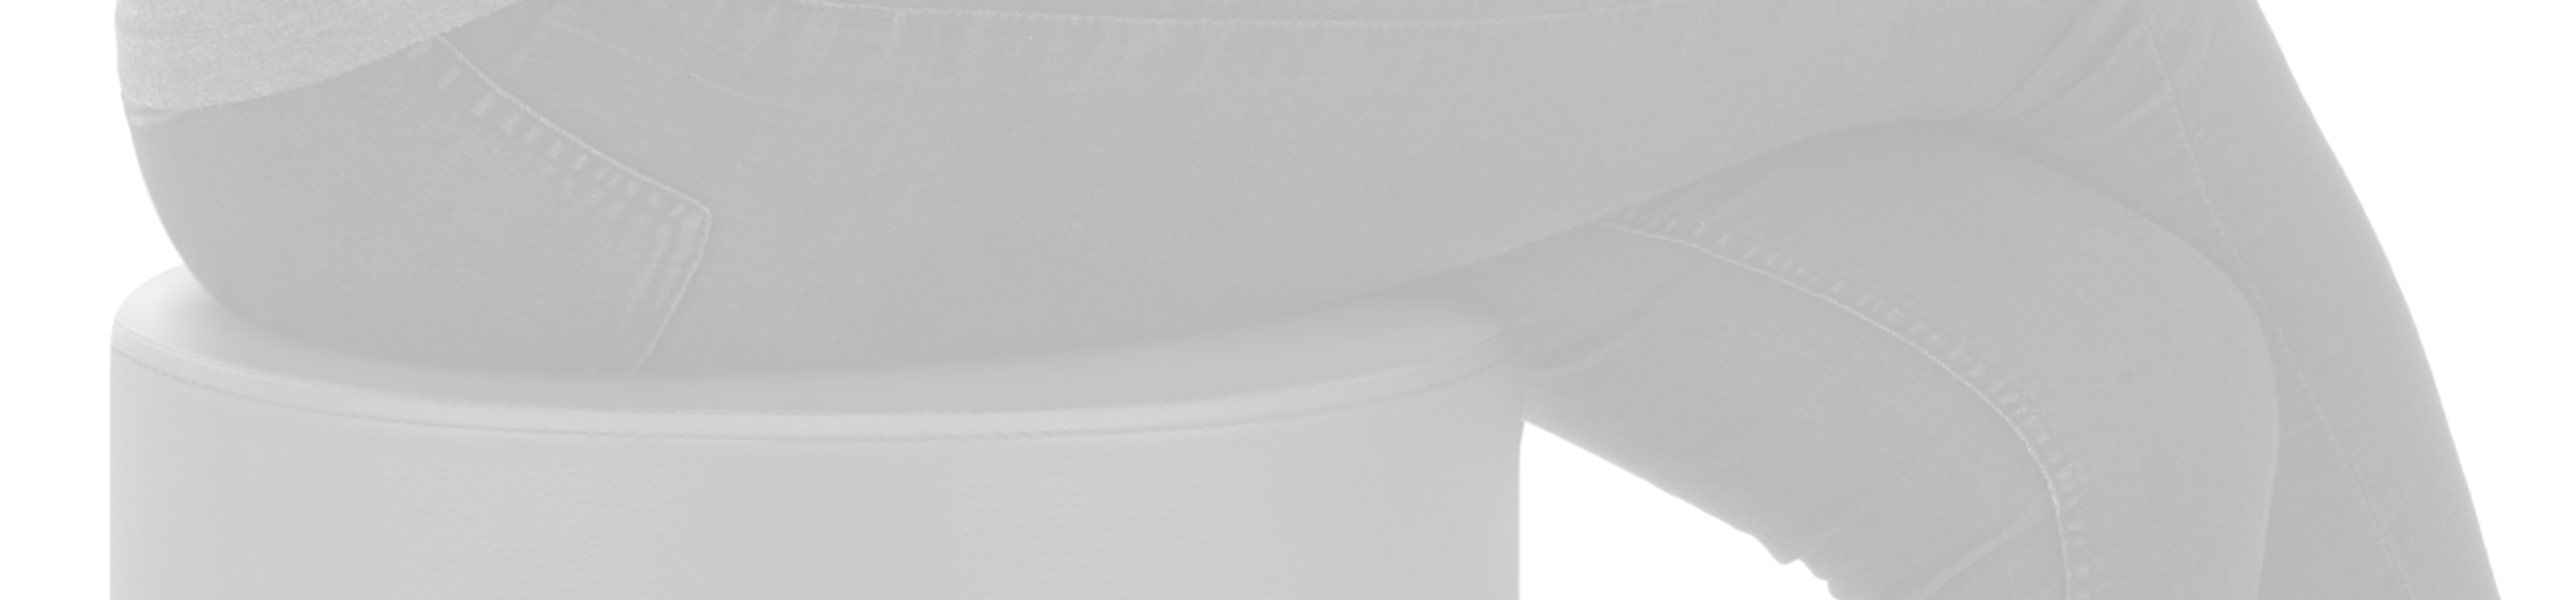 Bullet Stool Grey Review Banner